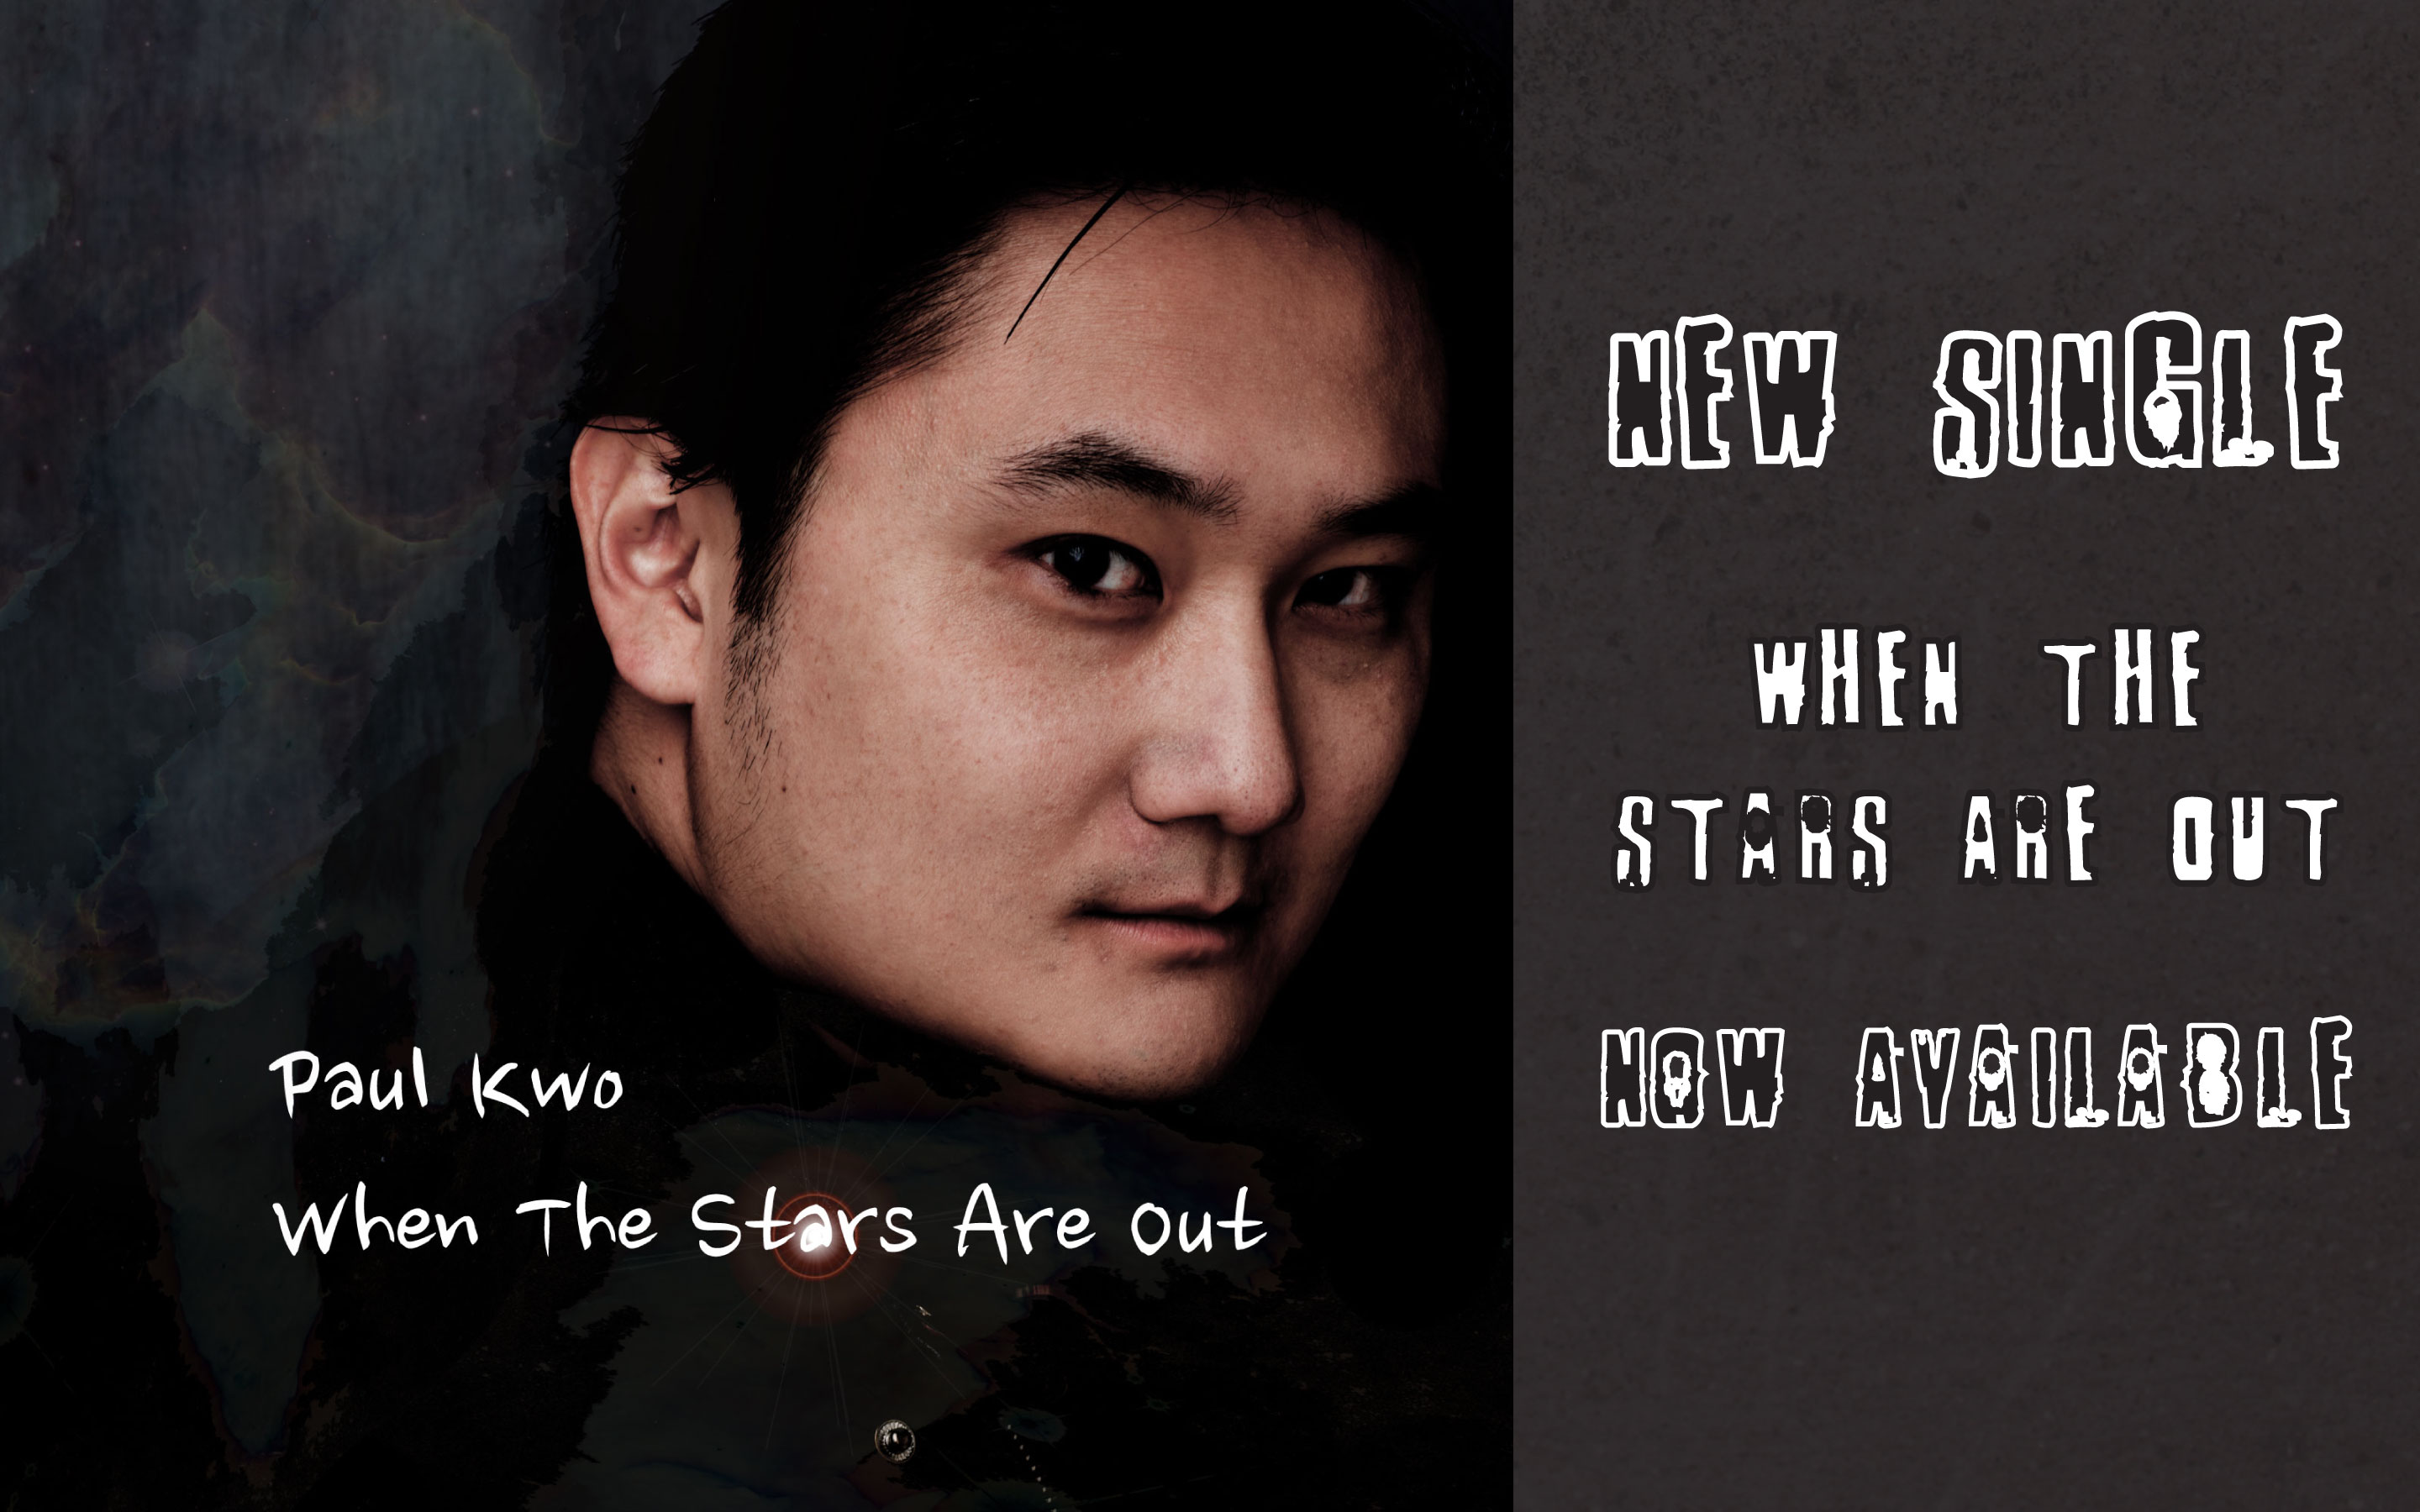 Paul Kwo New Single When the Stars are Out